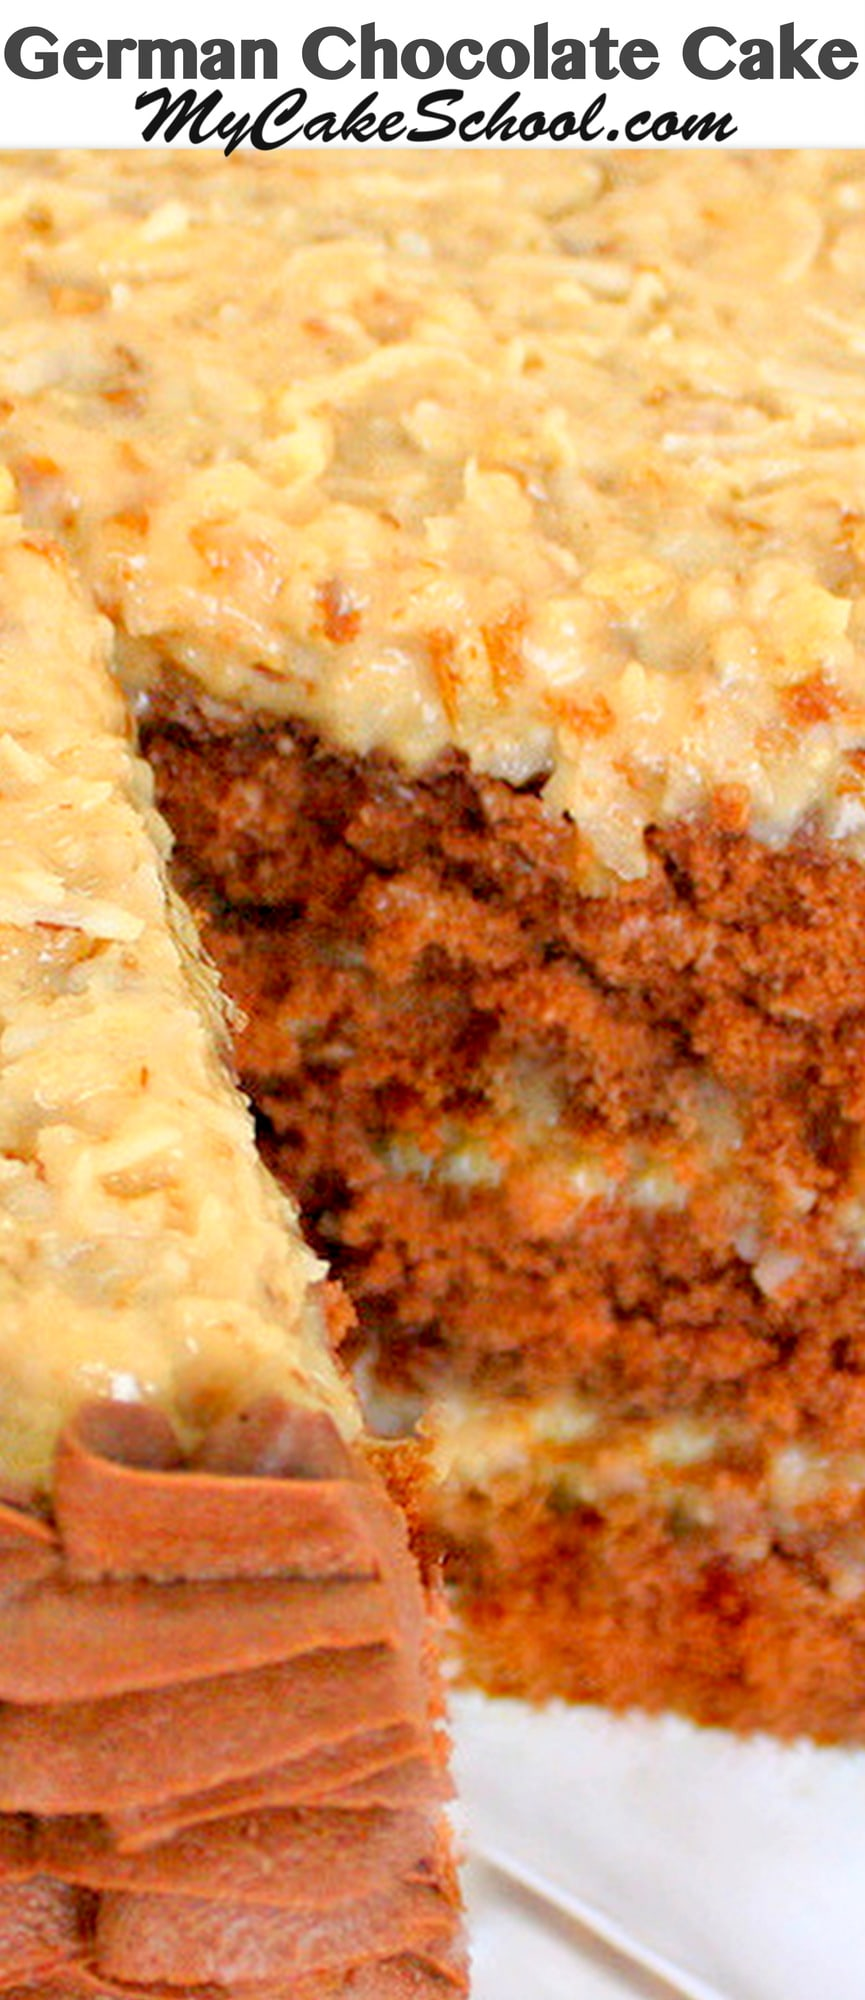 german chocolate cake from scratch german chocolate cake recipe scratch my cake school 4483